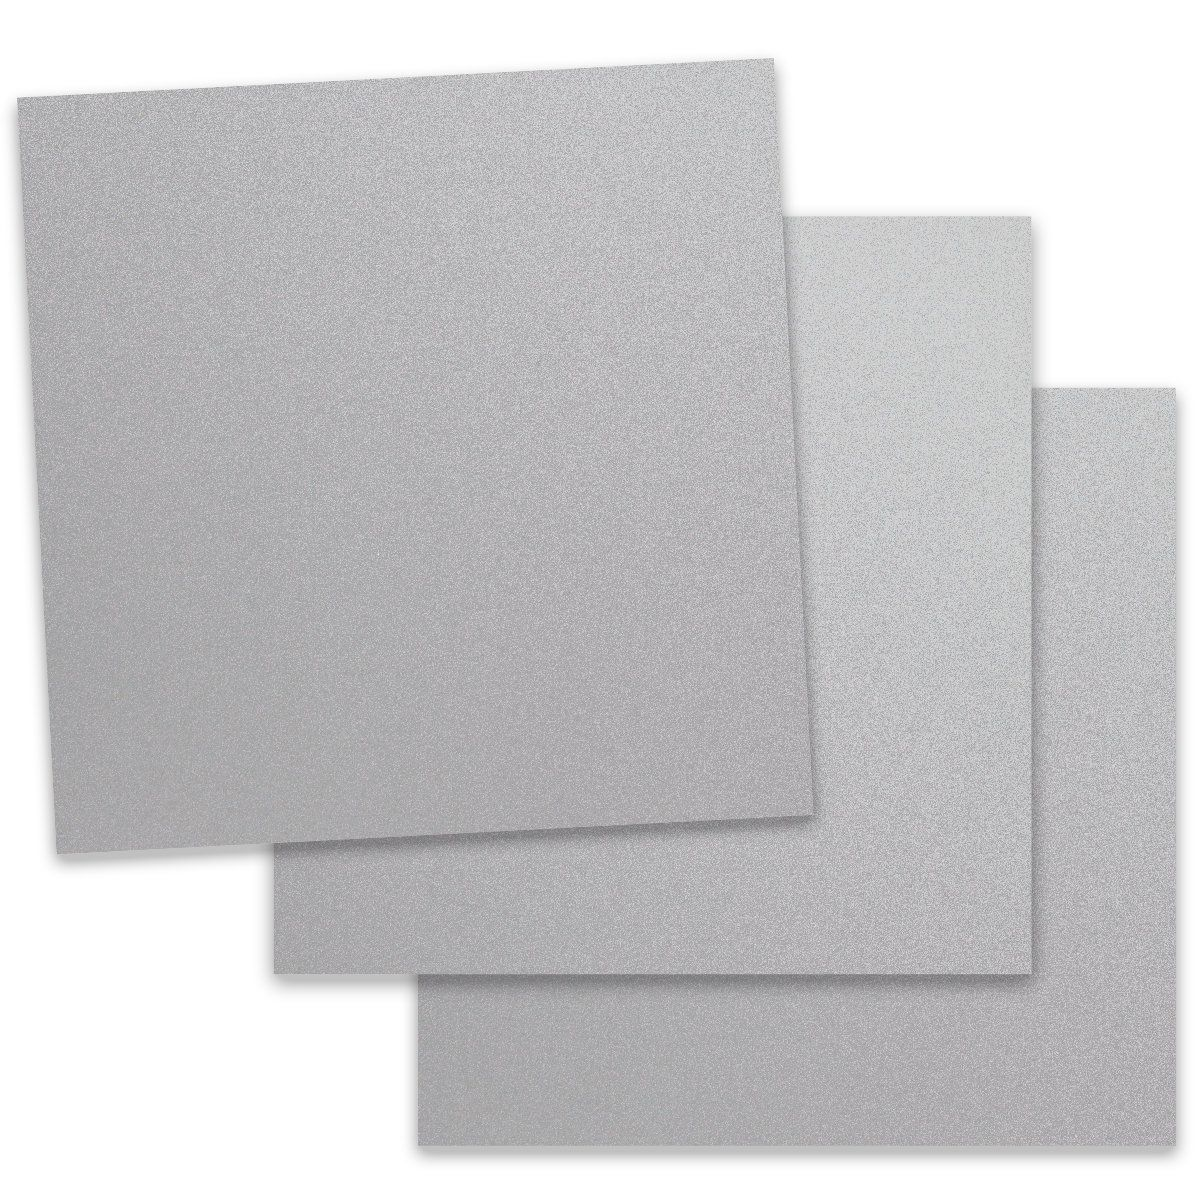 Curious Metallic Galvanised 12x12 Card Stock Paper 92lb Cover